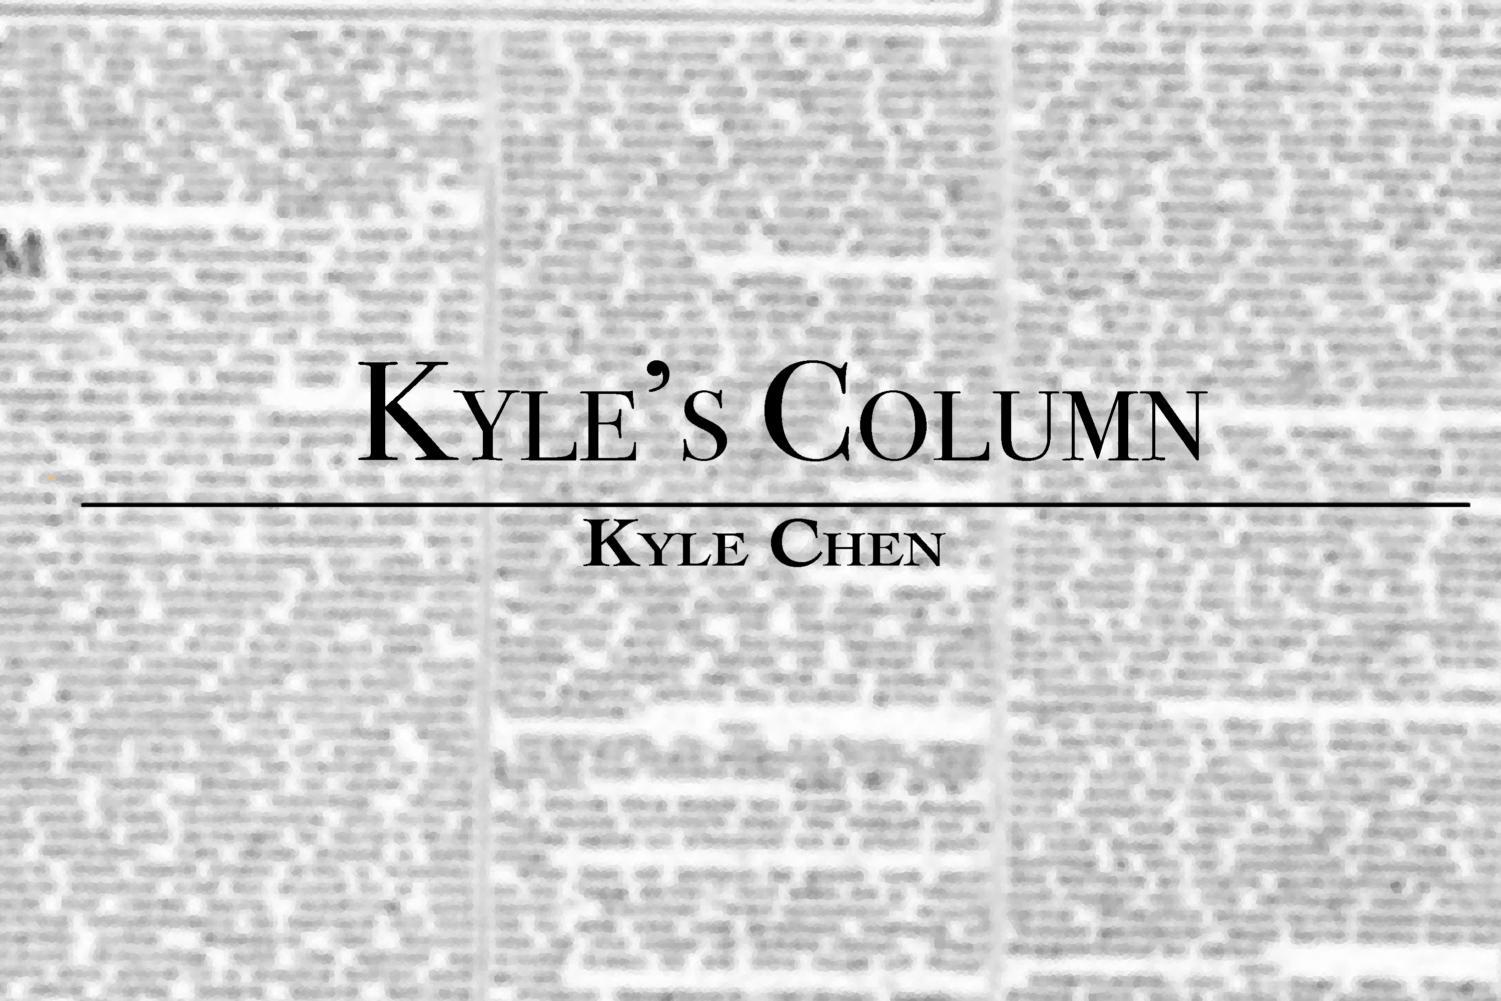 In the latest installment of Kyle's Column, Opinions Editor Kyle Chen discusses the challenges and benefits of writing.